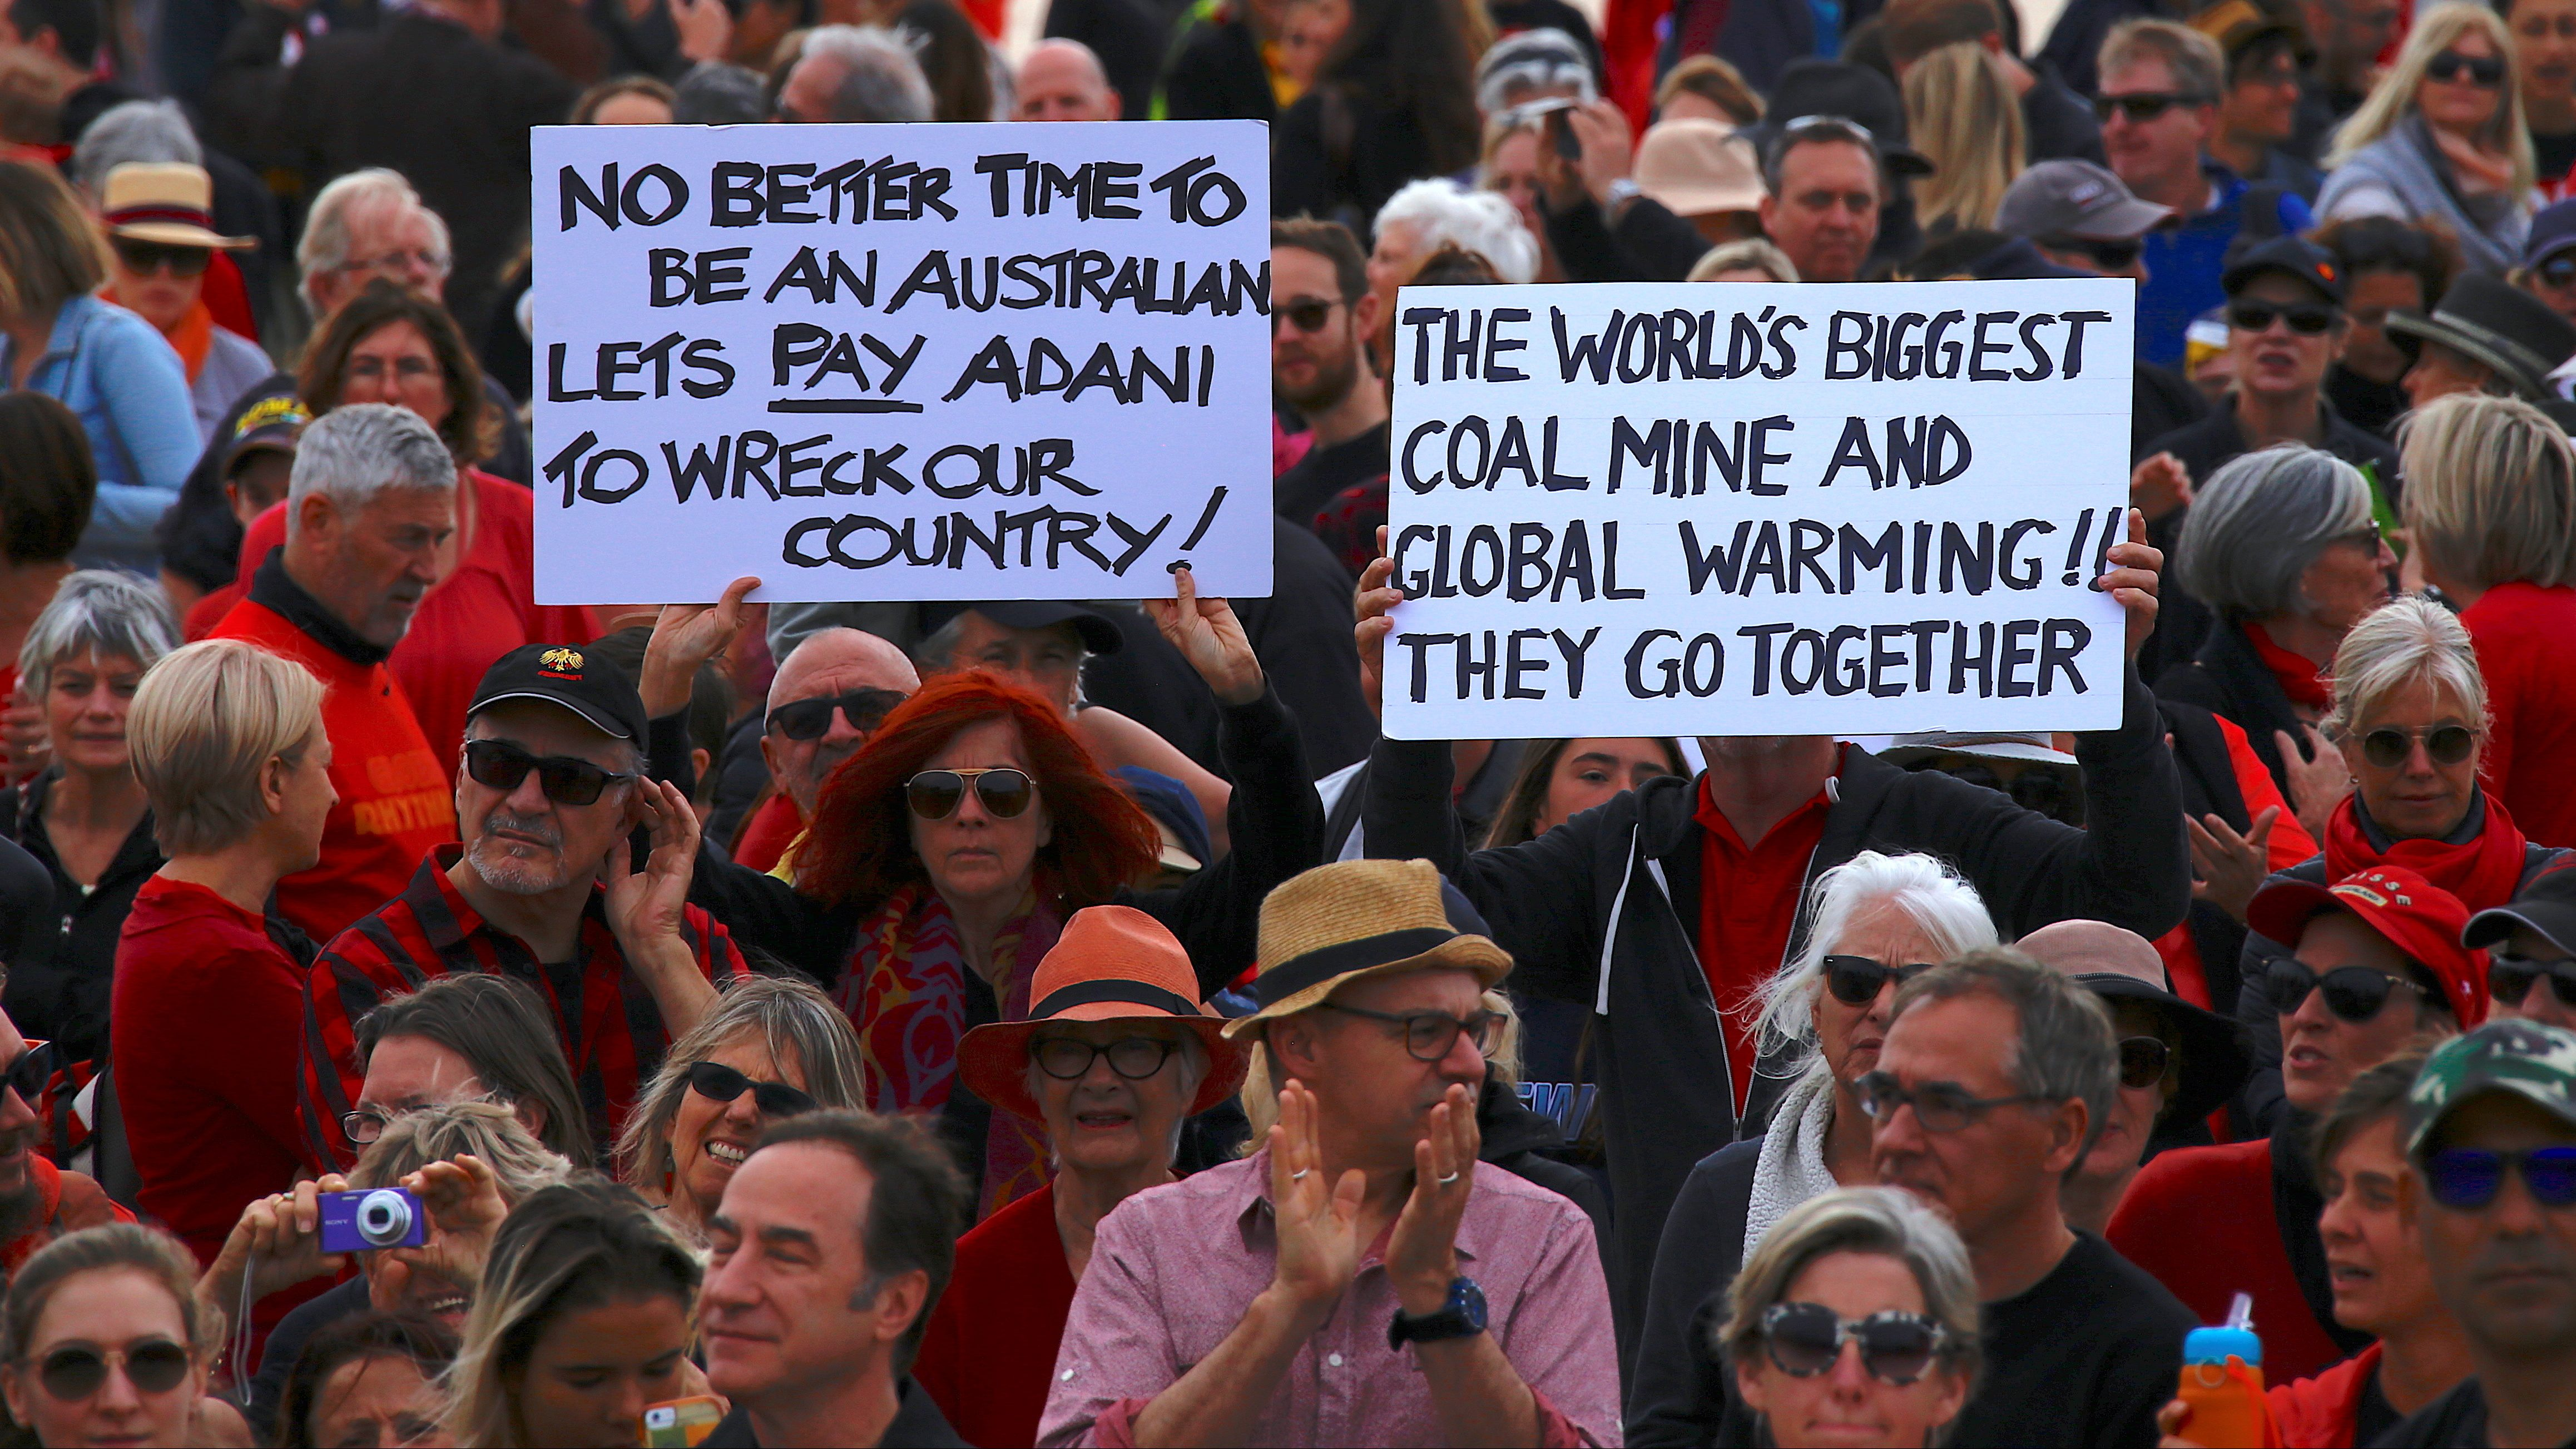 Protesters hold signs as they participate in a national Day of Action against the Indian mining company Adani's planned coal mine project in north-east Australia, at Sydney's Bondi Beach in Australia, October 7, 2017.       - RC18A67A28F0